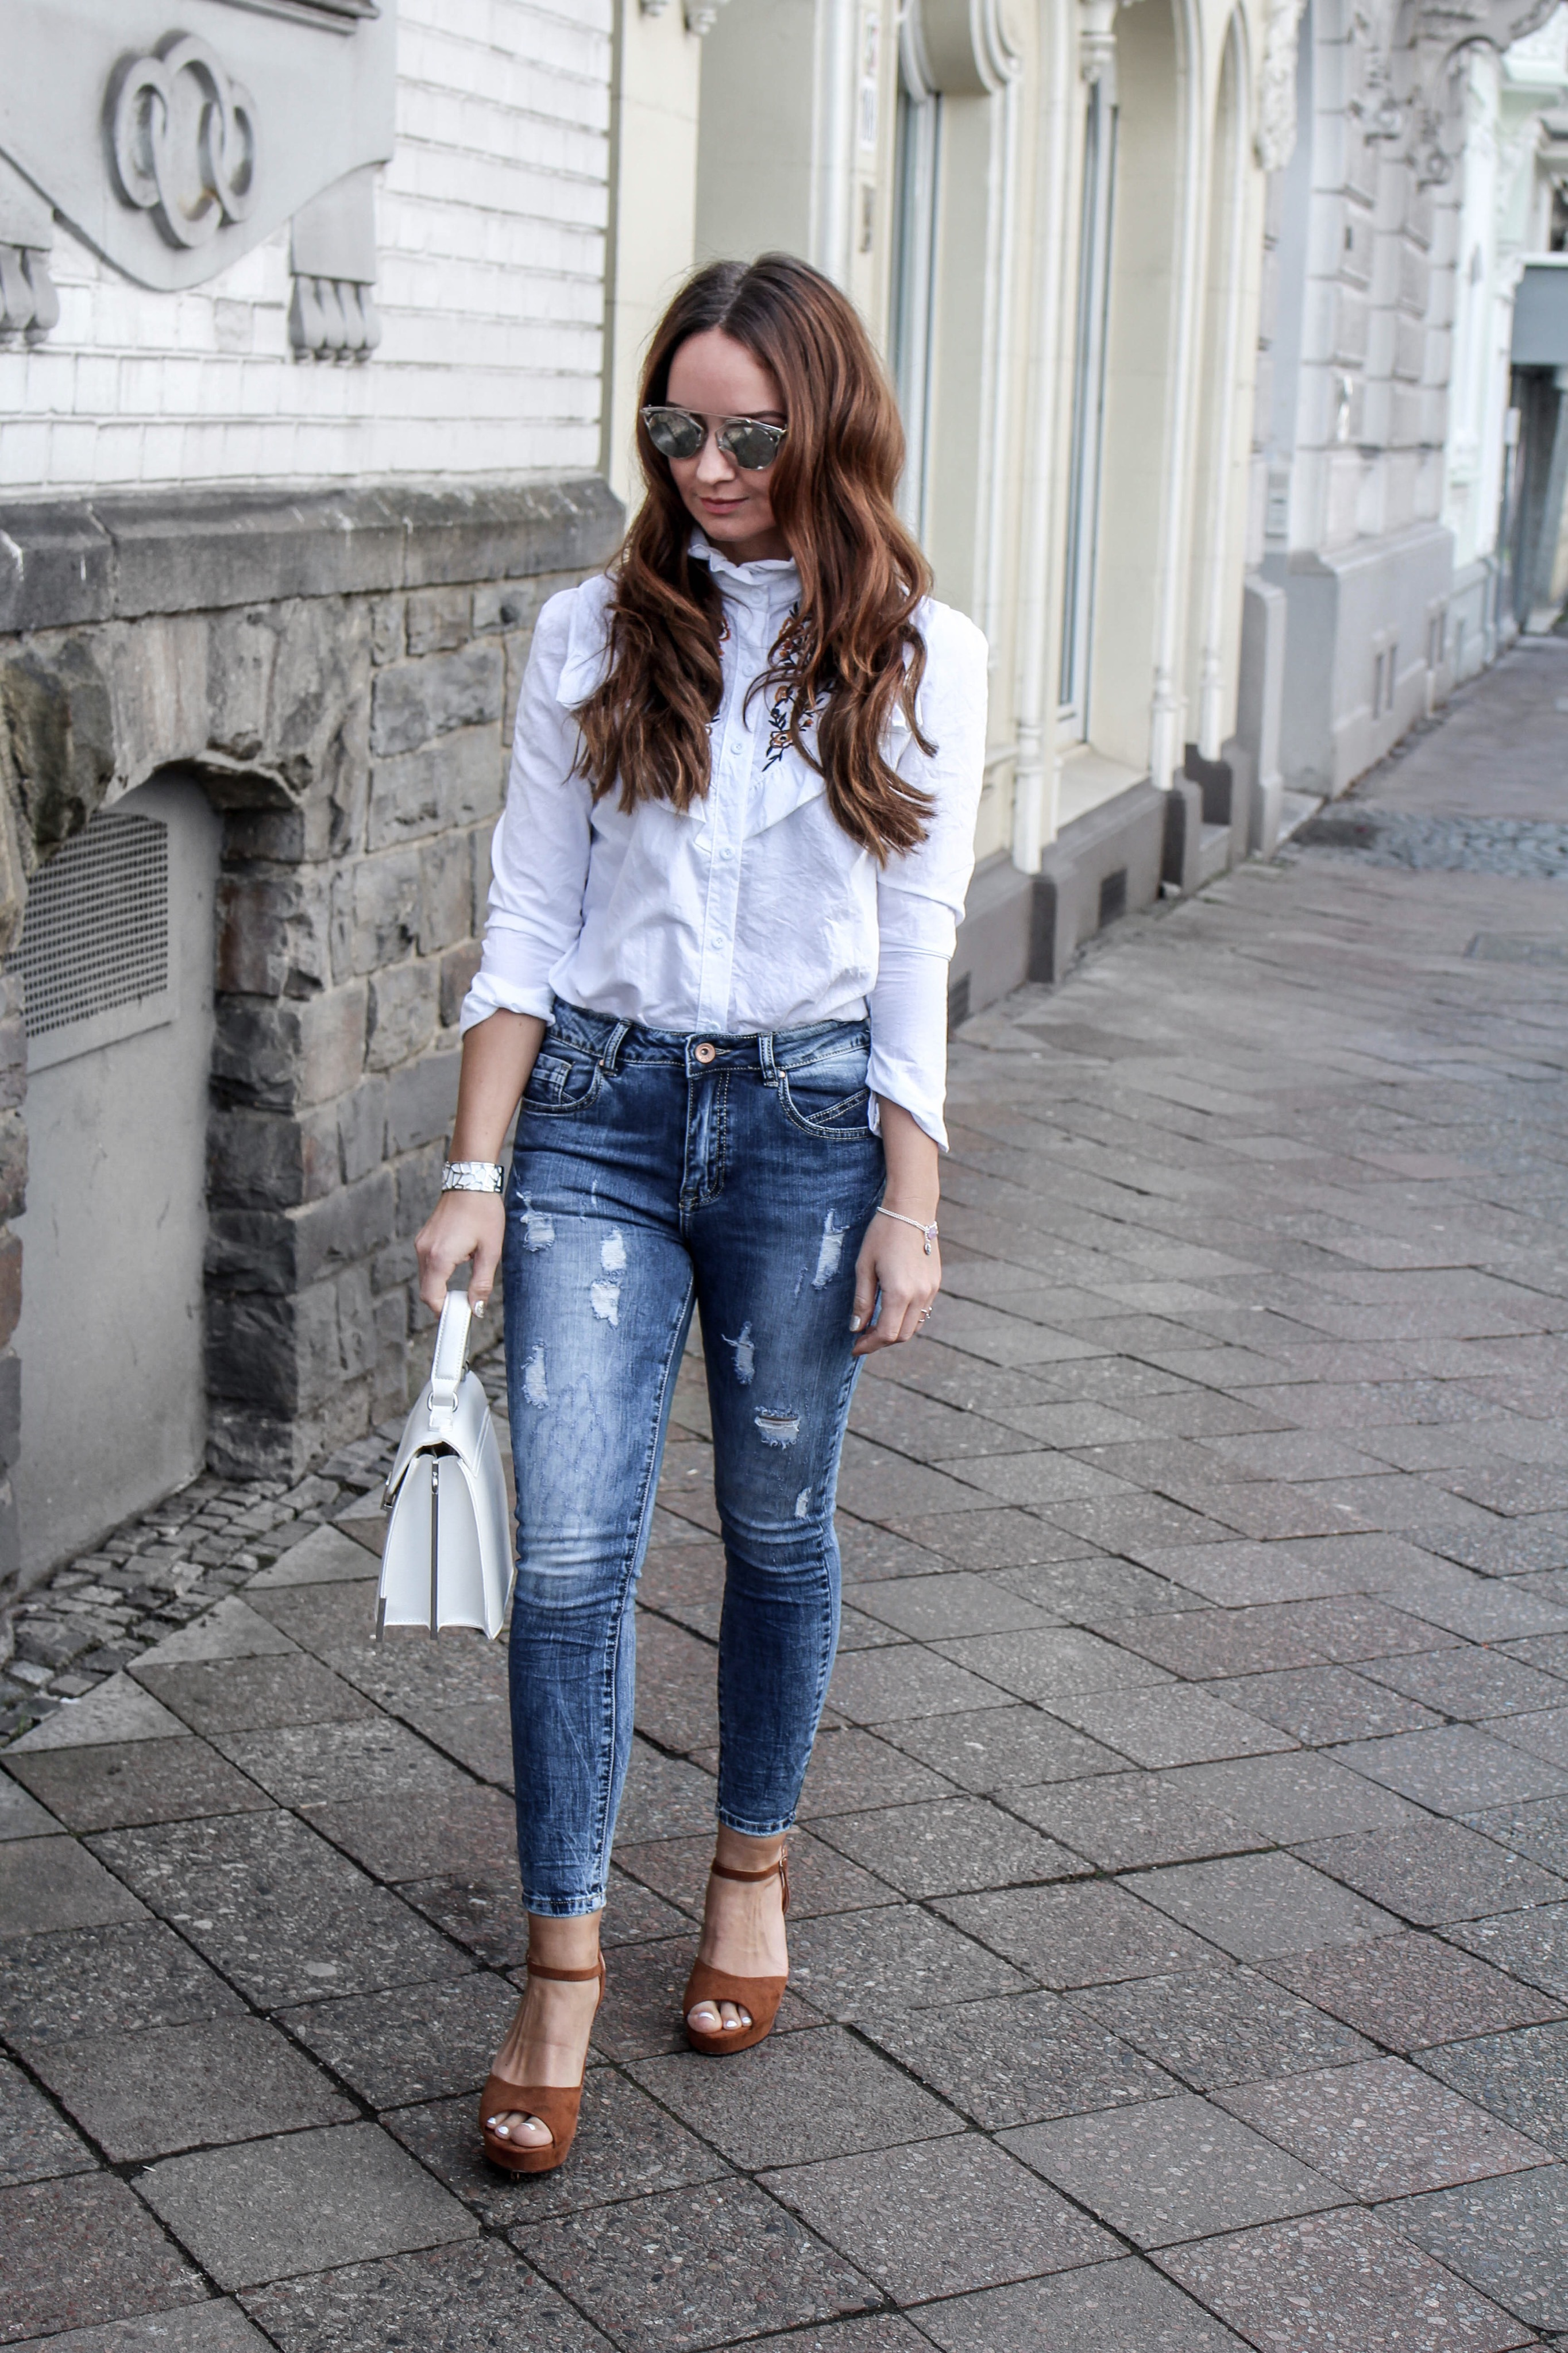 Fashioncircuz by Jenny fashioncircuz_jenny_streetstyle_chicwis_grethewinter In Jeans und Bluse durch den Frühling